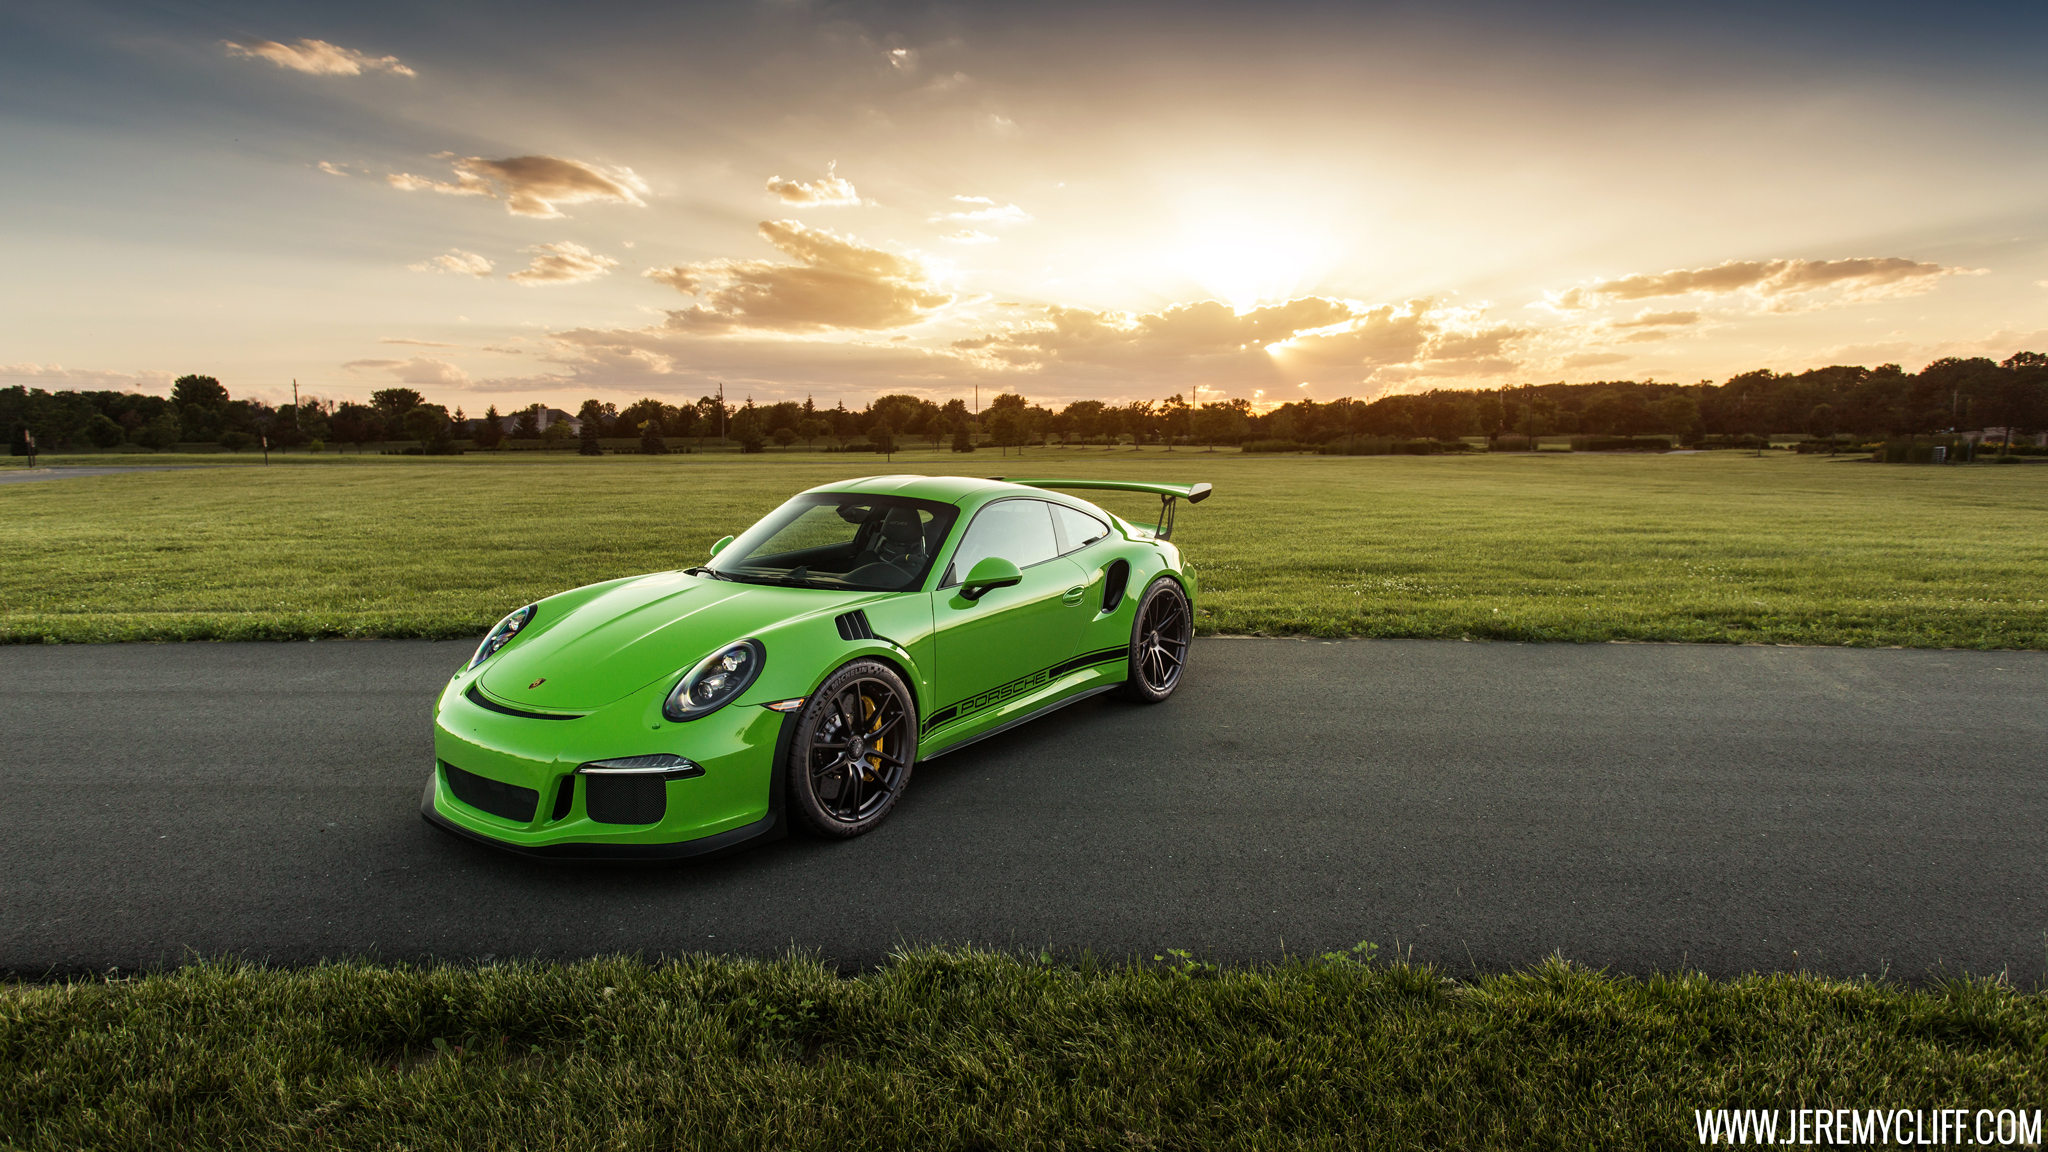 Porsche 911 GT3 Wallpapers and Background Images   stmednet 2048x1152